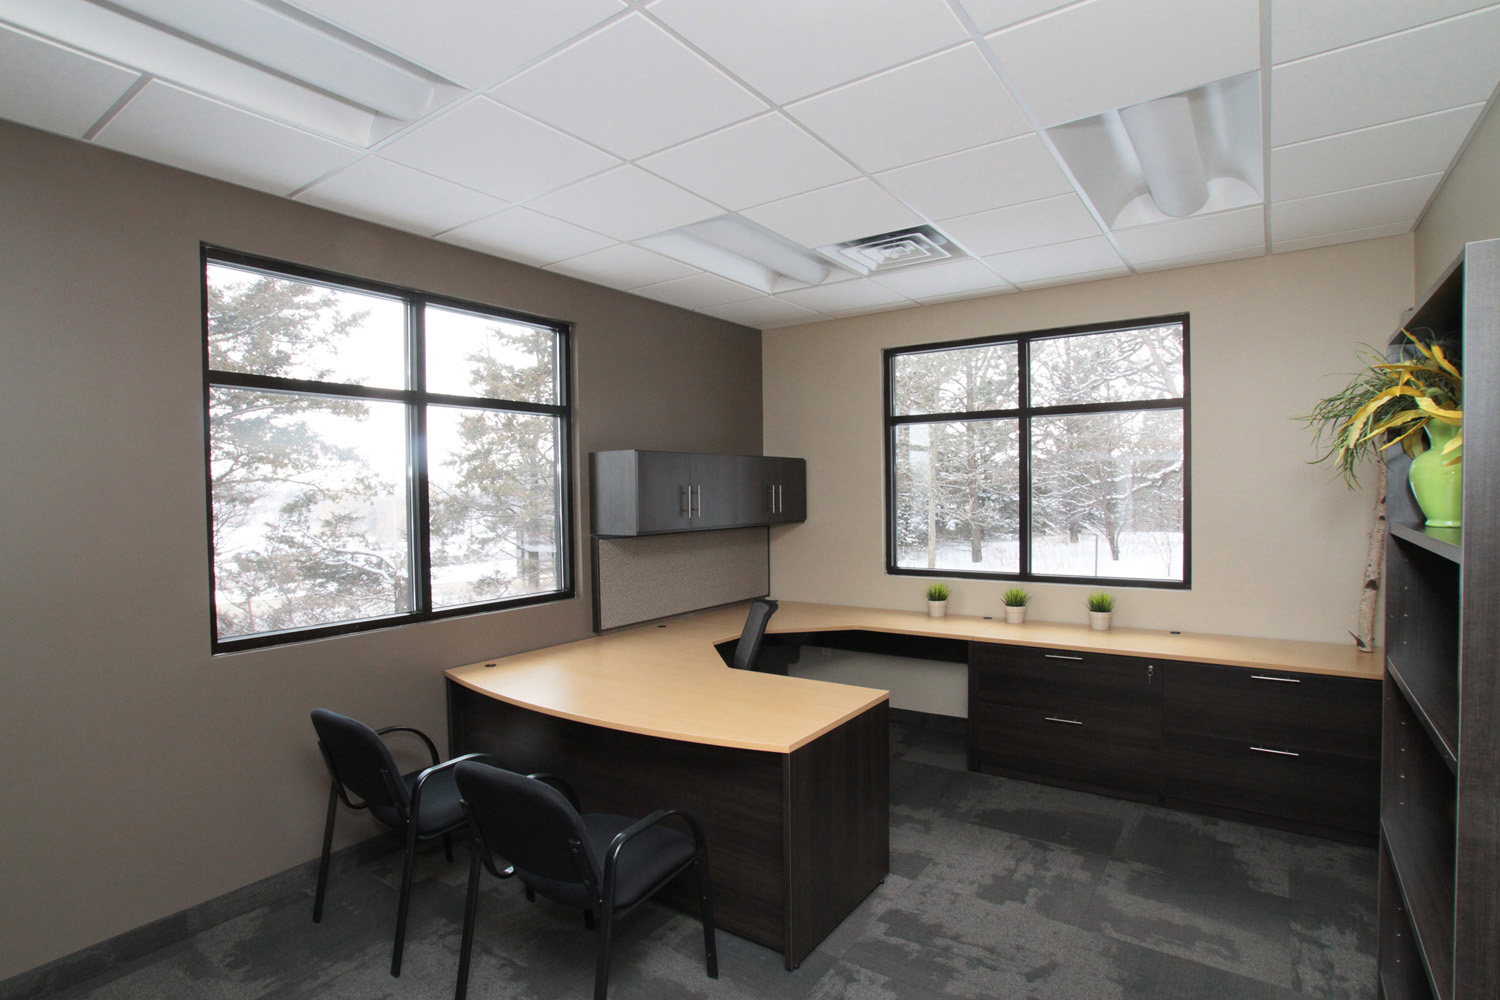 Office space design mankato new used office for Interior design for office space